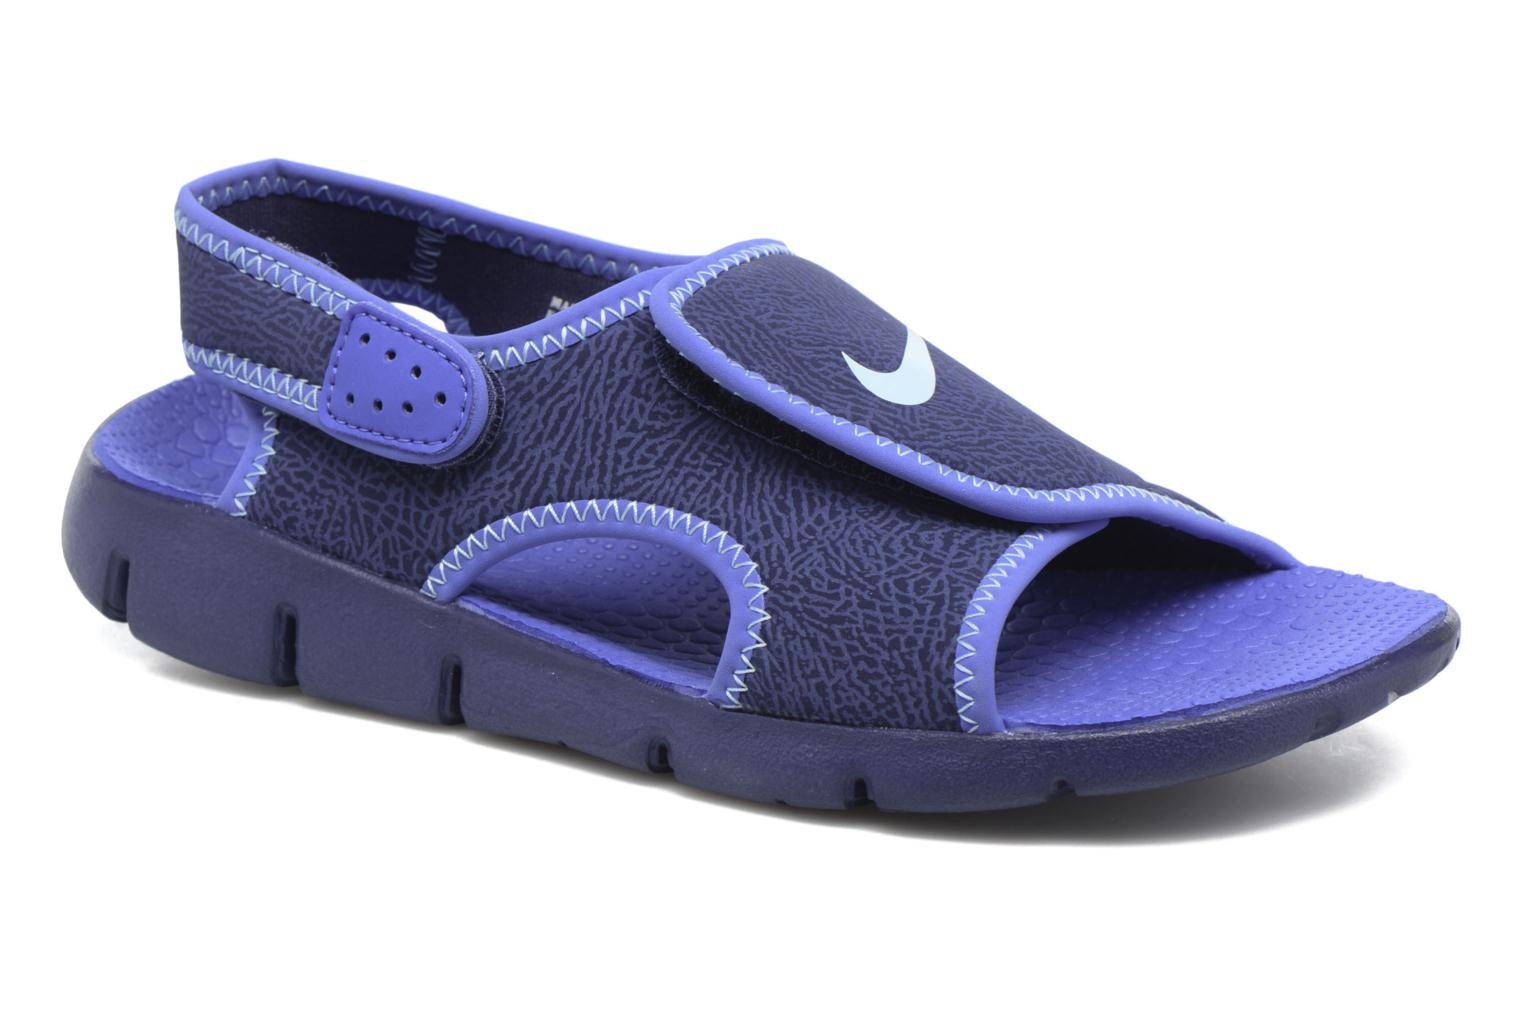 Nike - Kinder - Nike Sunray Adjust 4 (Gs/Ps) - Sandalen - blau